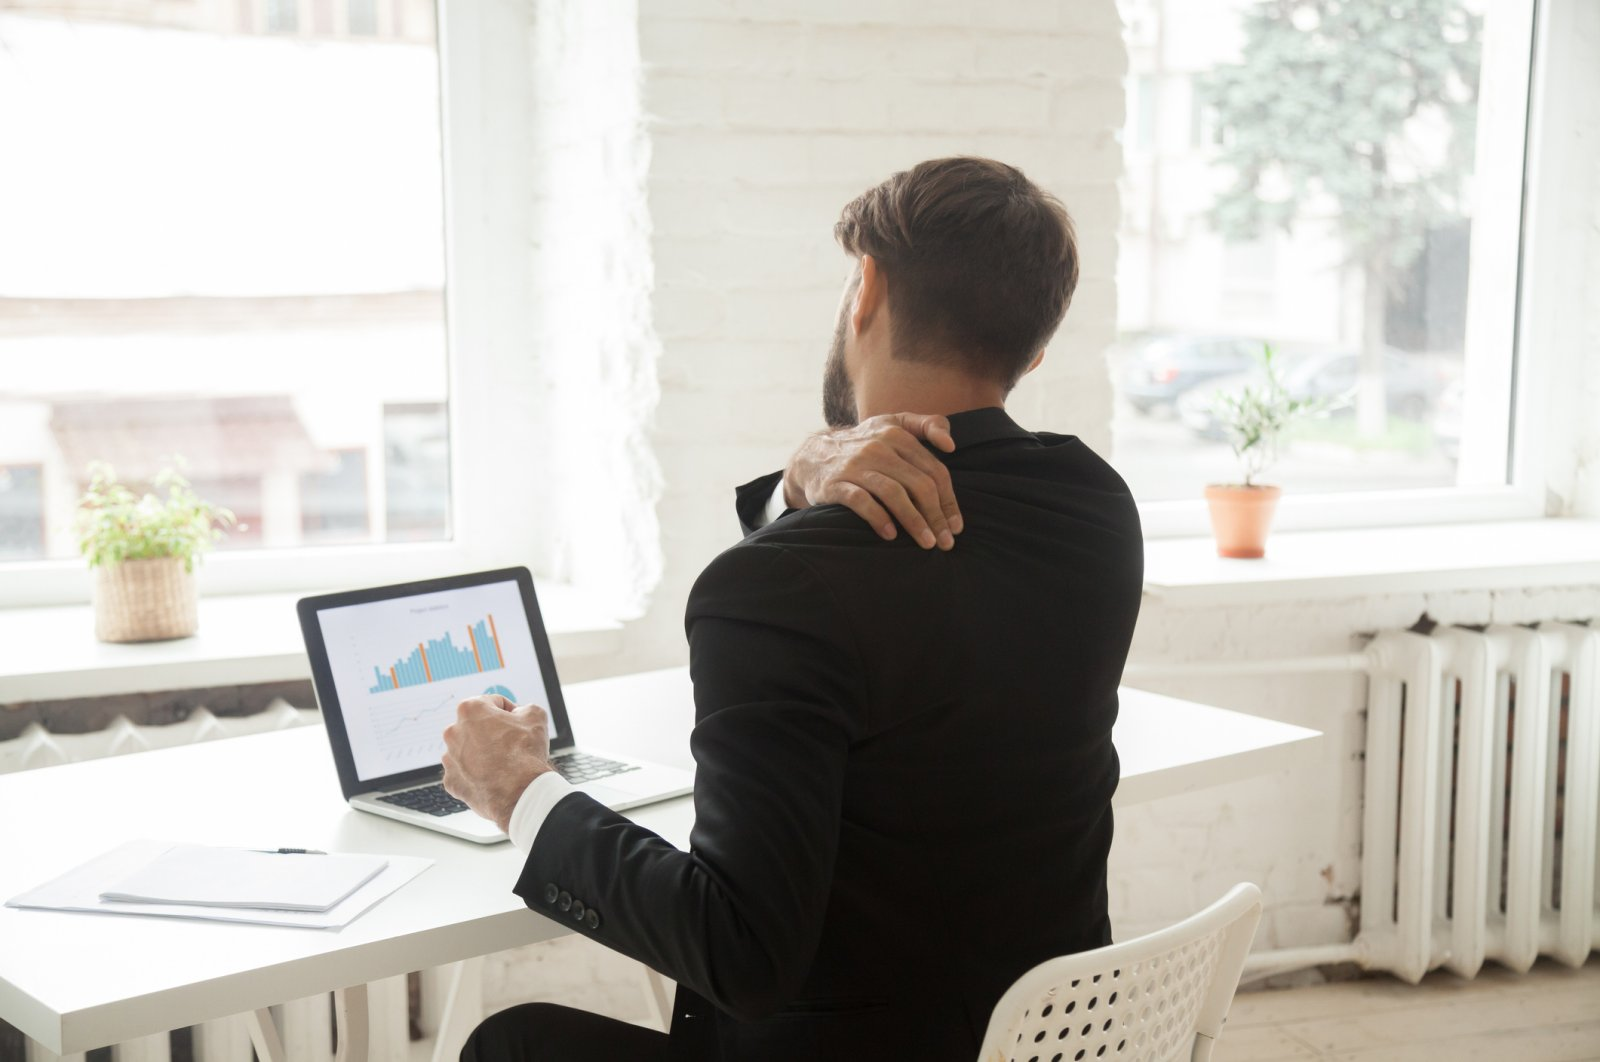 When you are tired after long working hours in front of the computer, little exercises like shoulder rolls can ease your muscles. (iStock Photo)